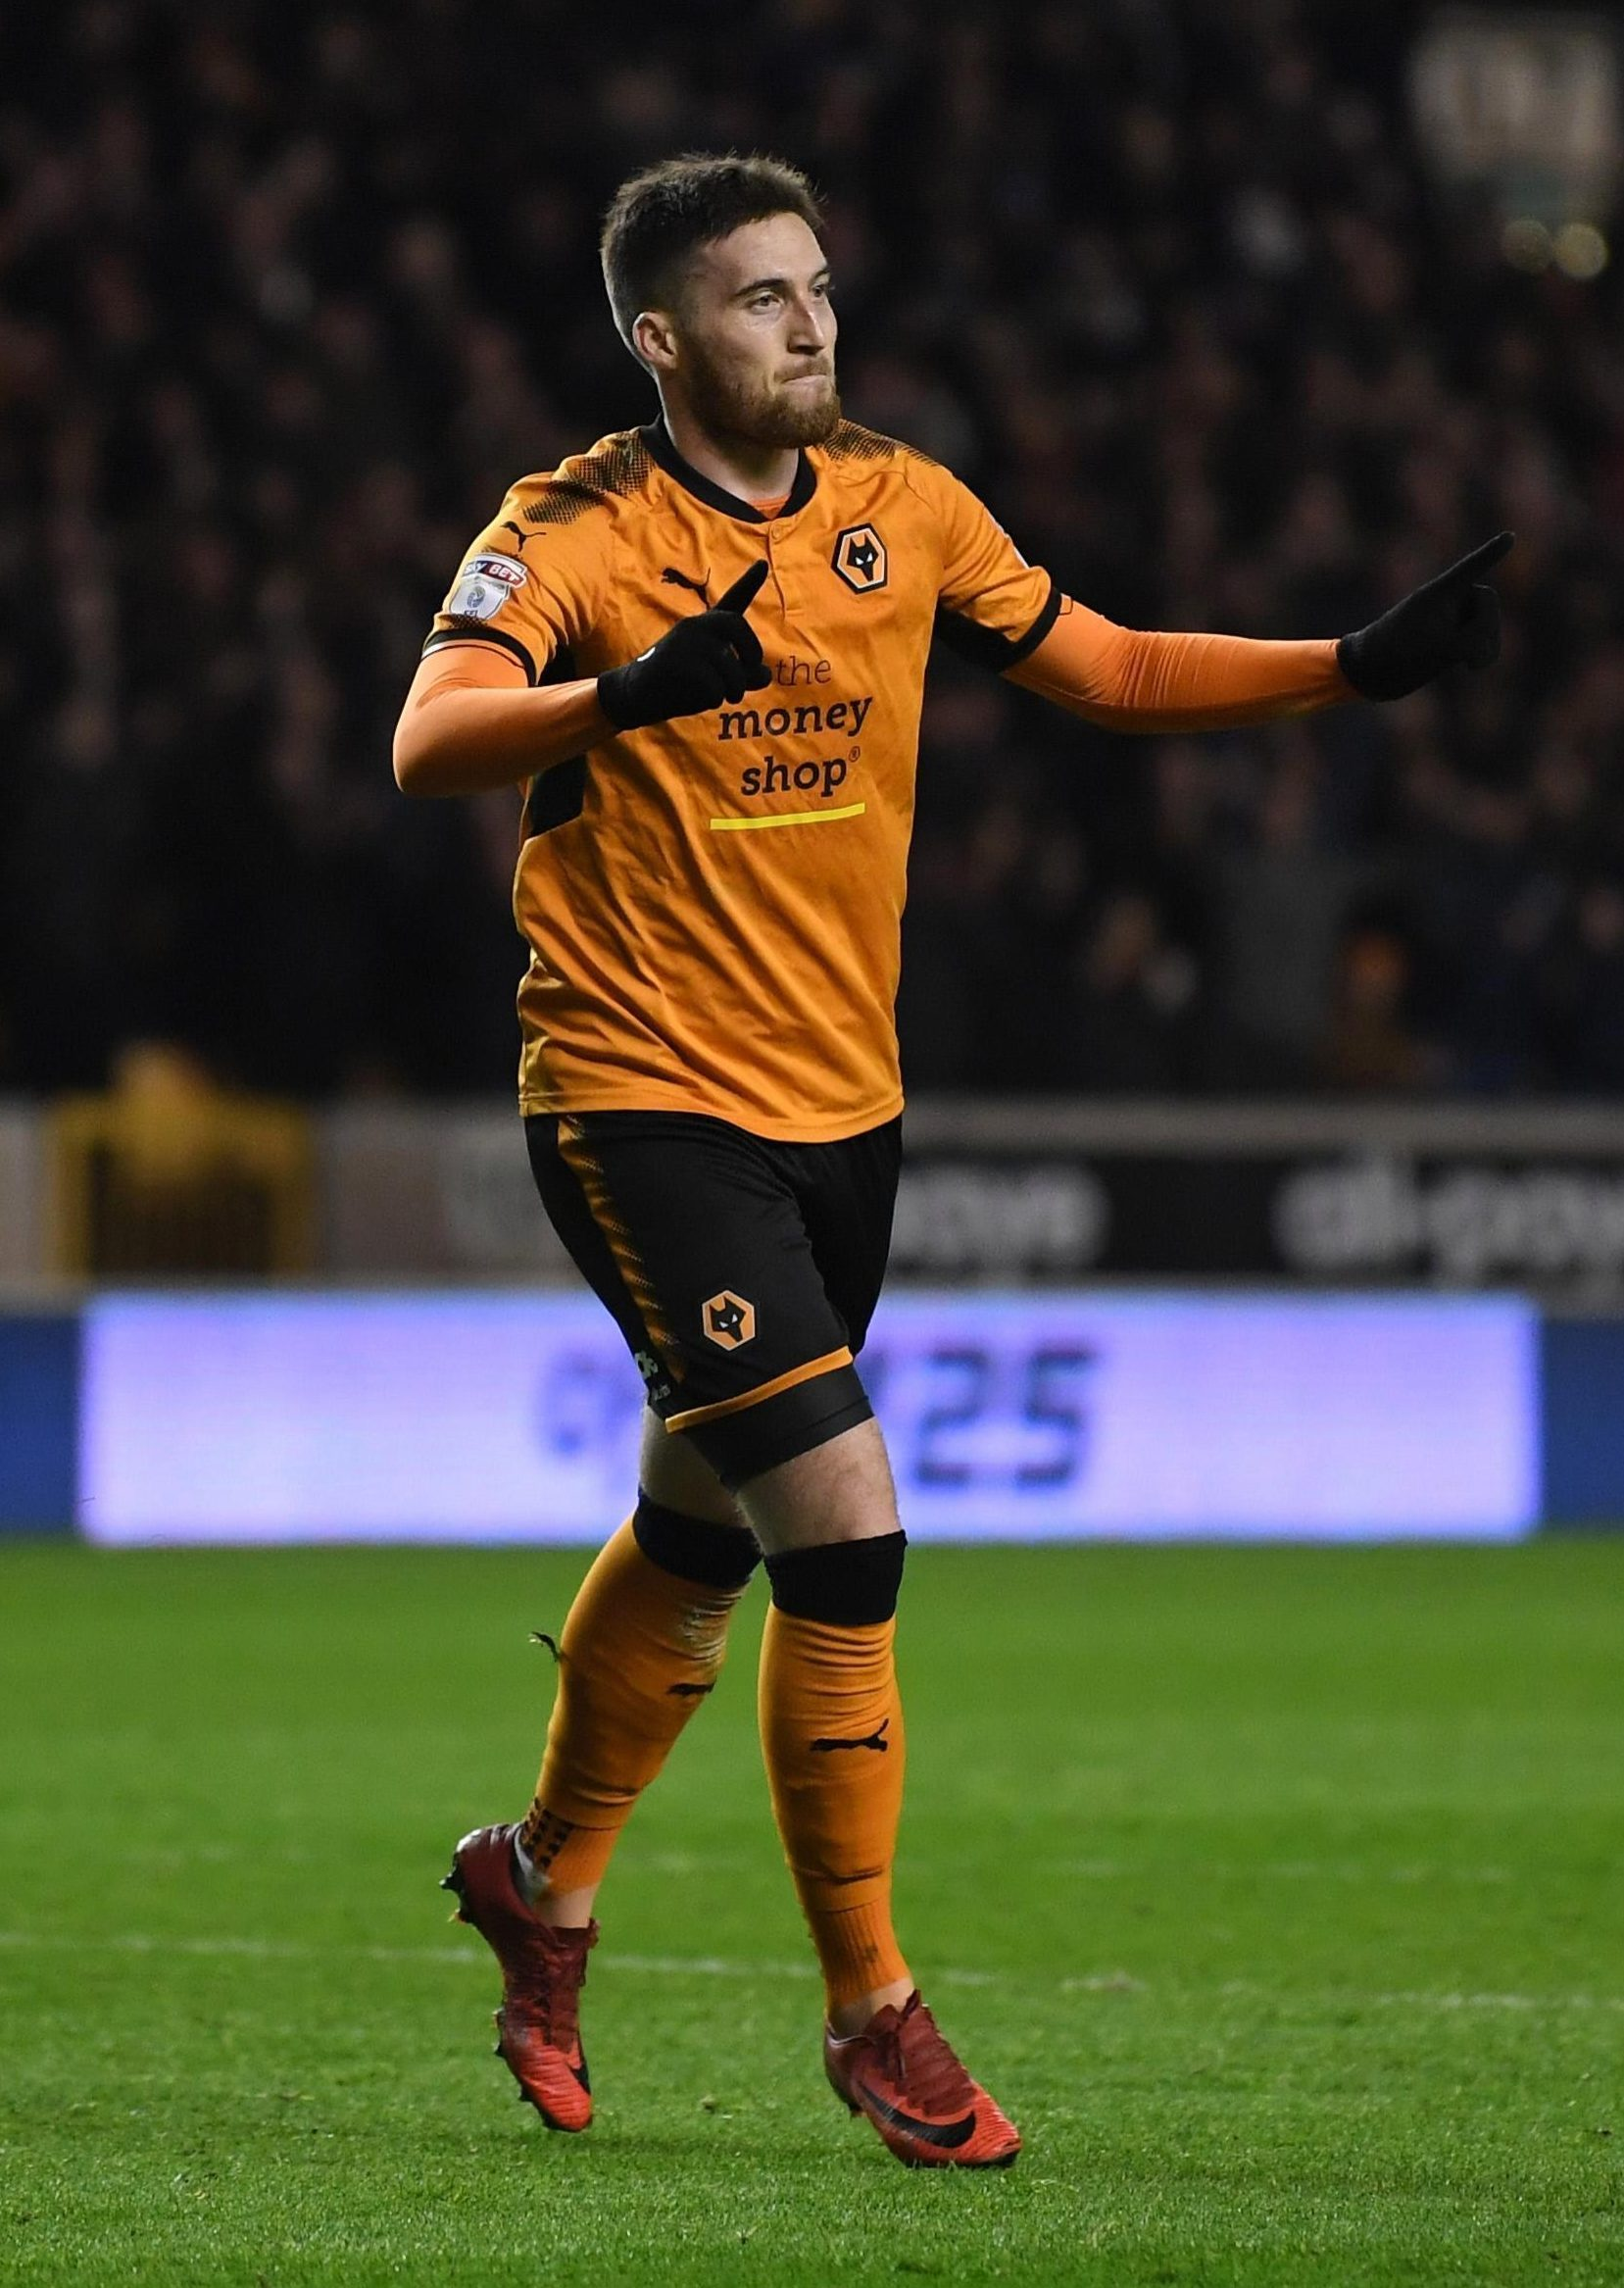 Wolves 3 Reading 0: Matt Doherty nets brace against Royals as Championship leaders get back to winning ways